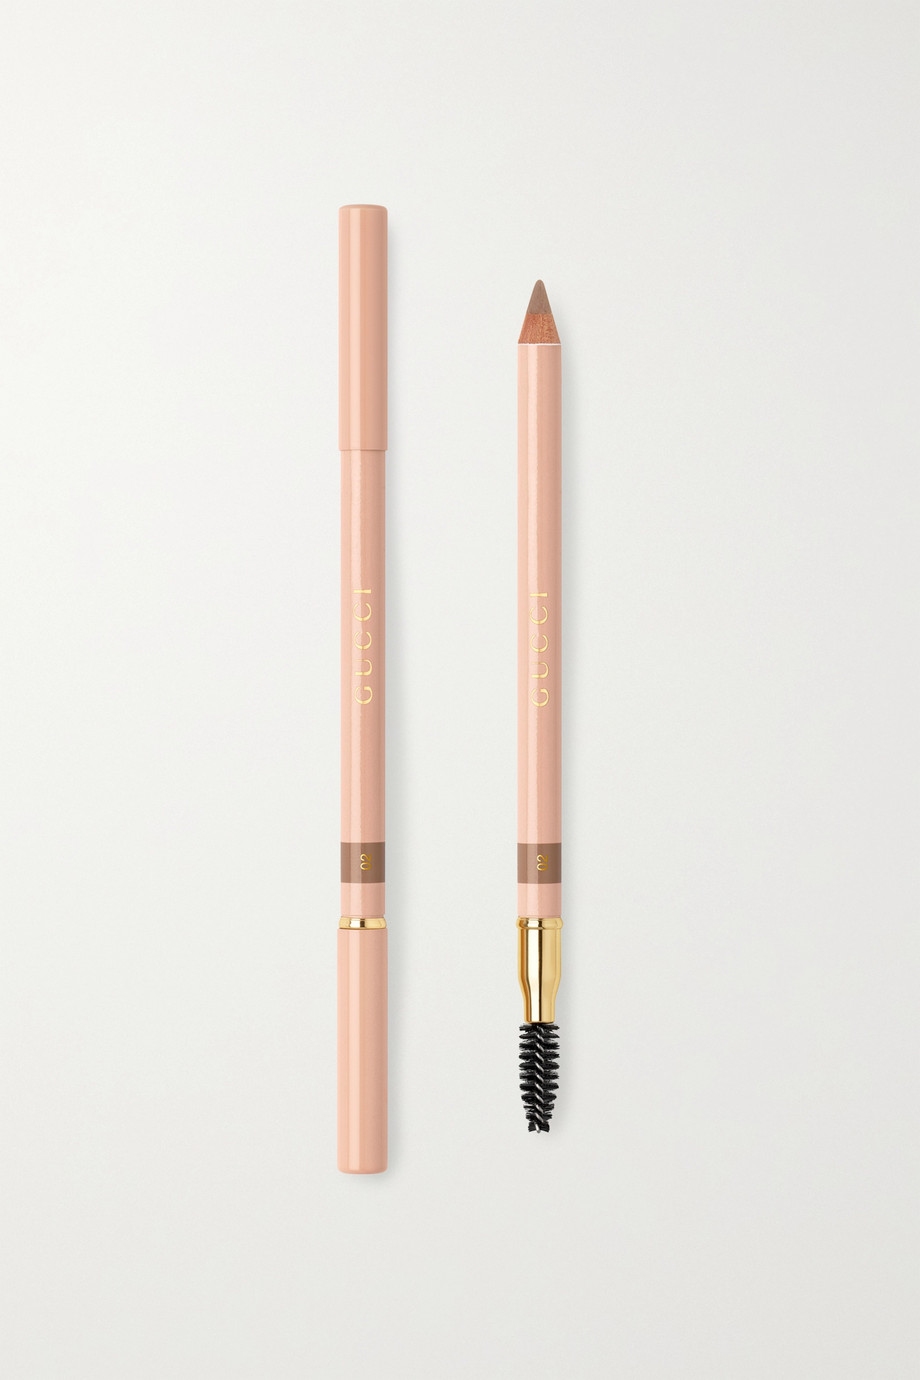 Gucci Beauty Powder Eyebrow Pencil - Blonde